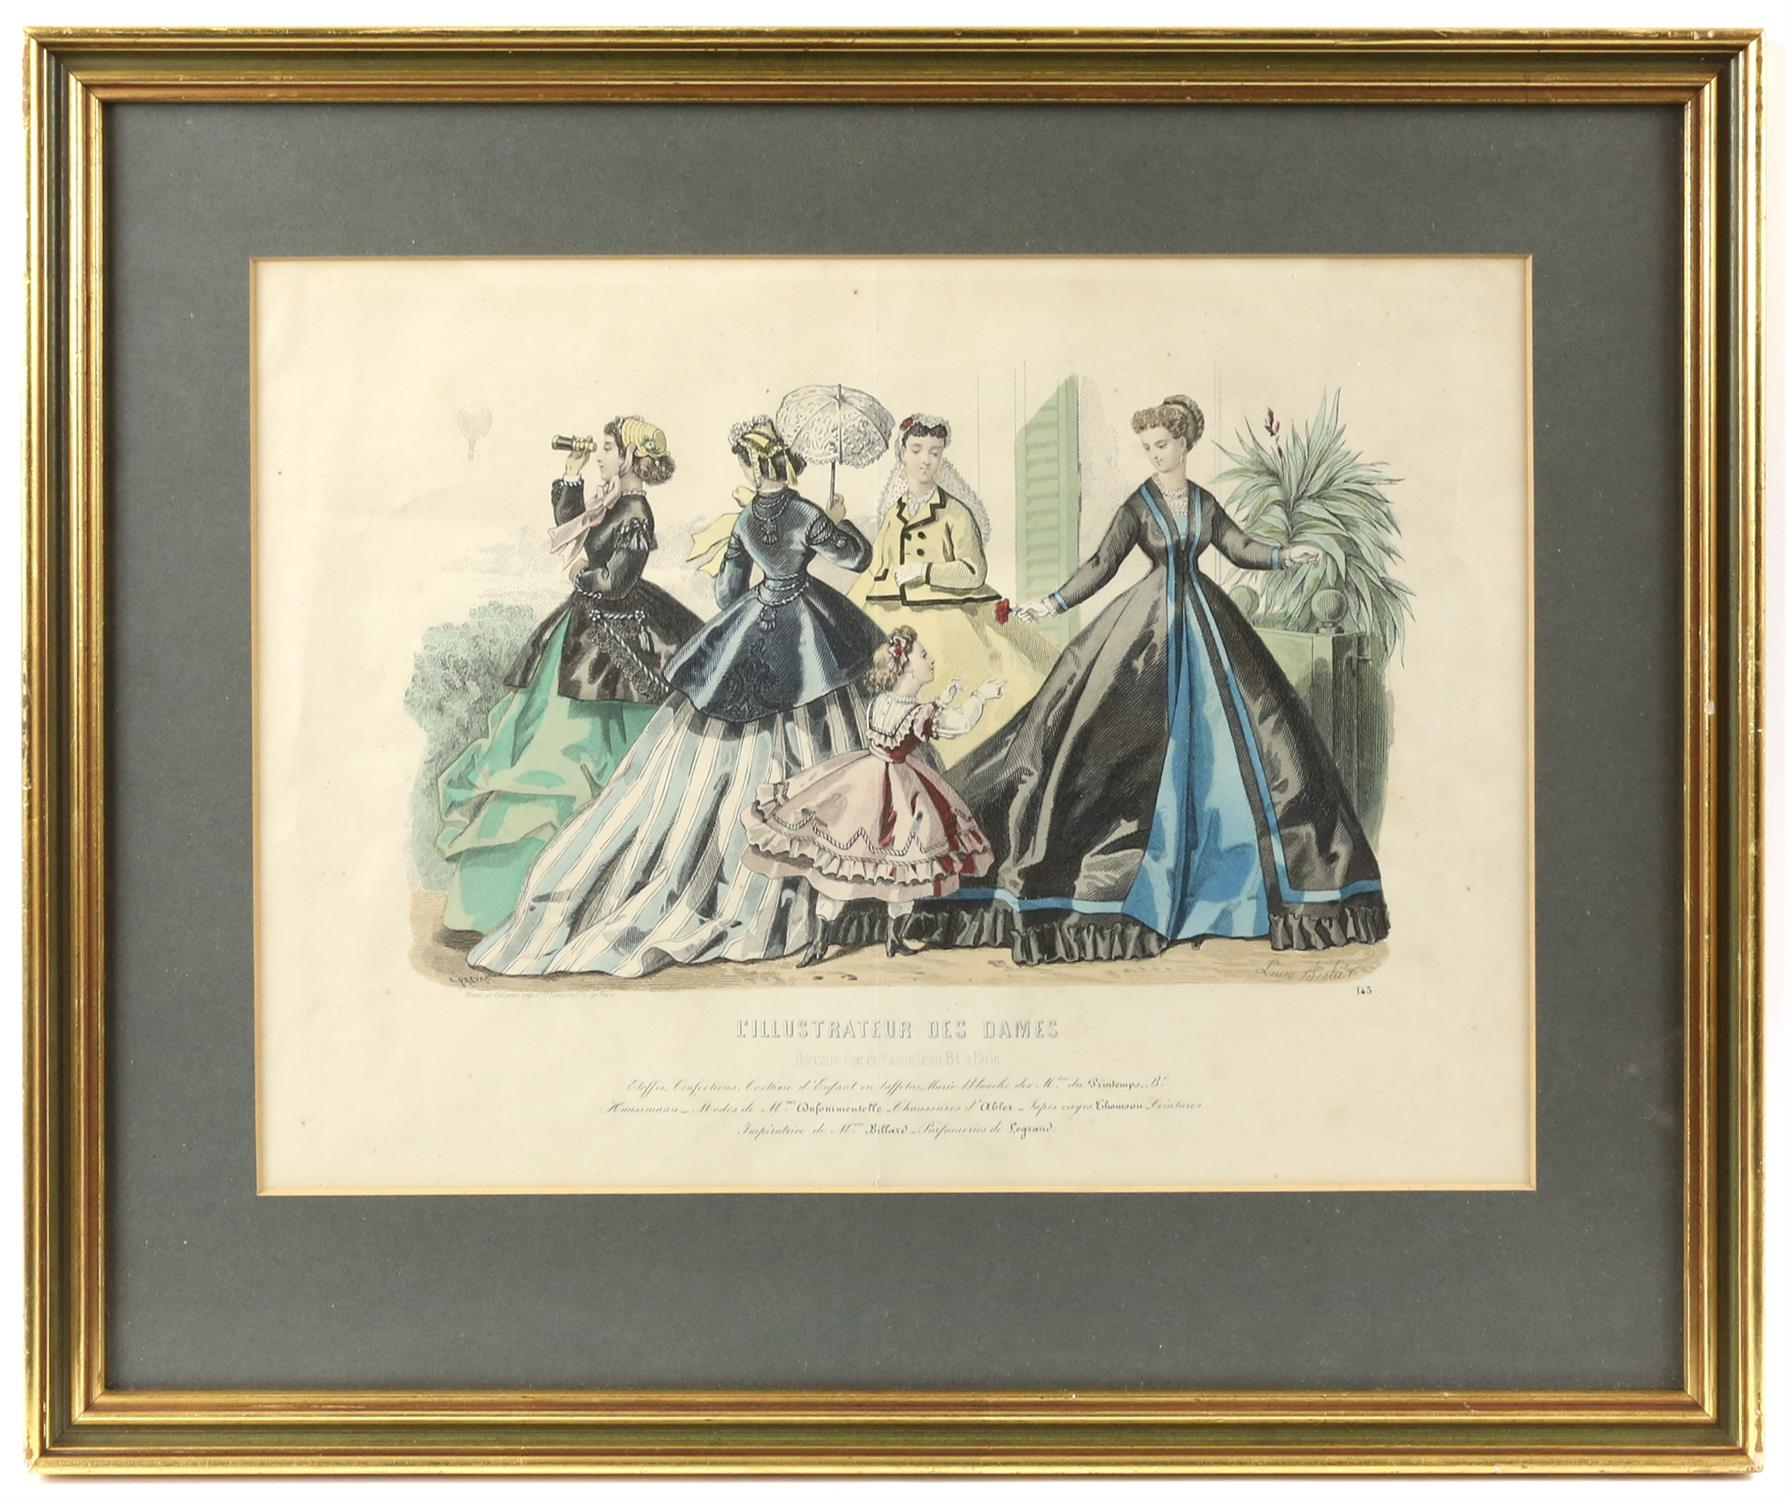 Collection of nineteenth-century French hand-coloured fashion prints, including 'Revue de la mode', - Image 2 of 5